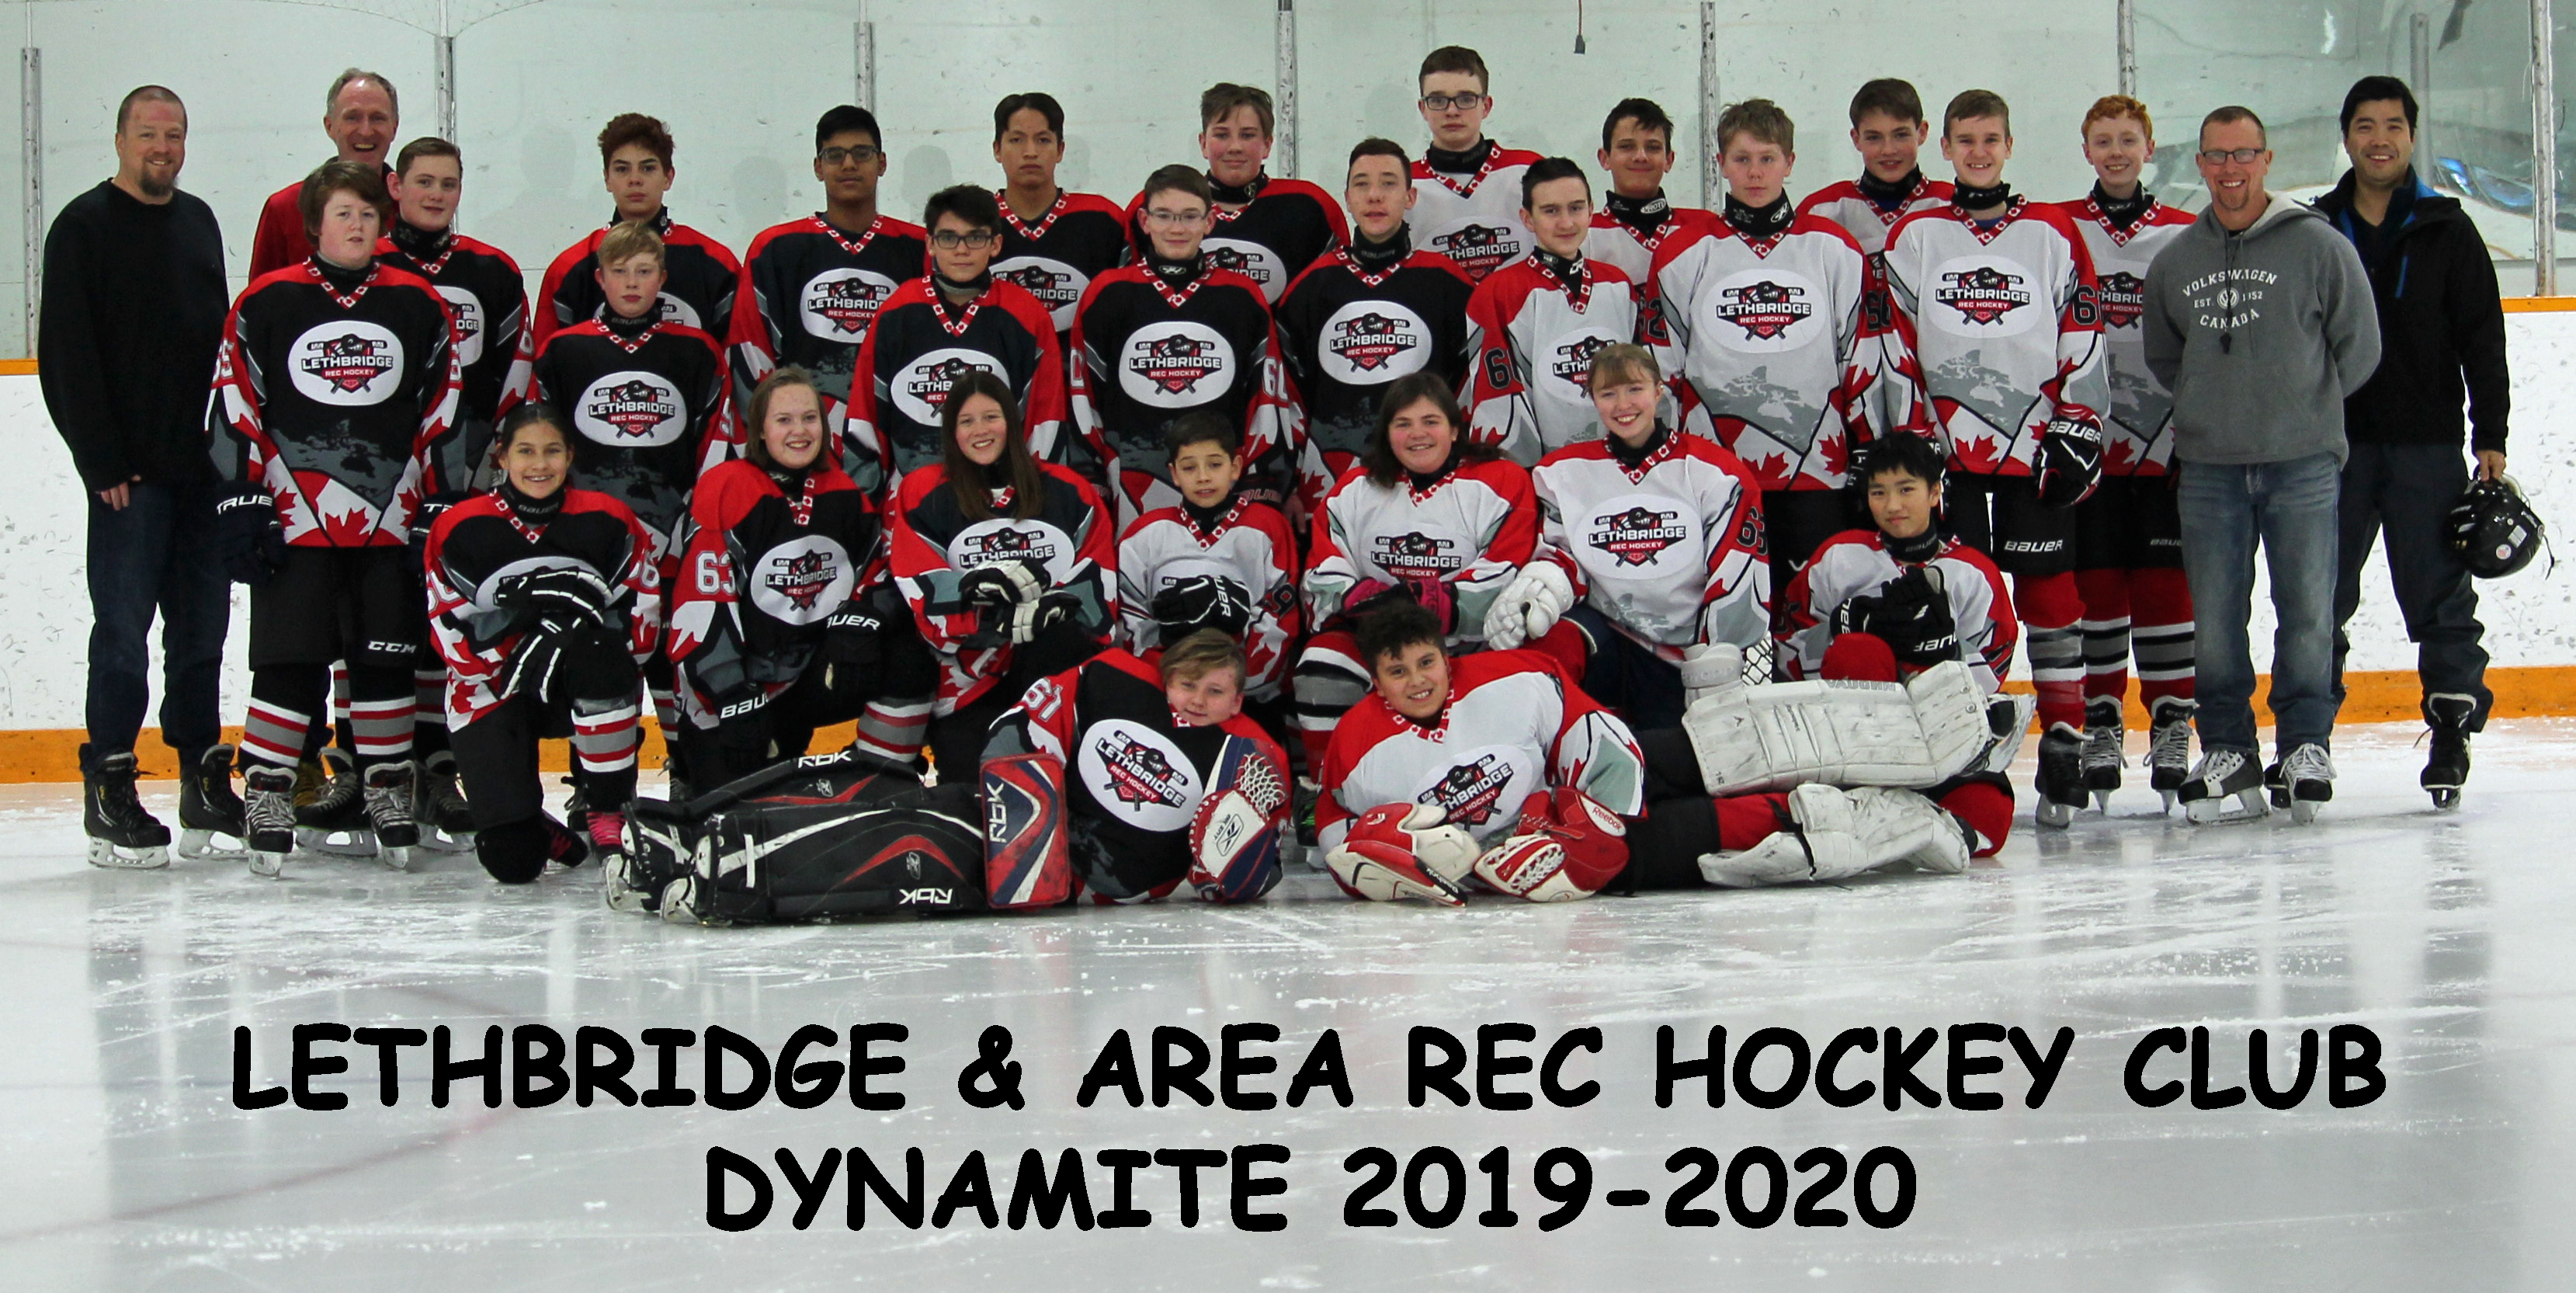 Dynamite Group Photo 2019-20